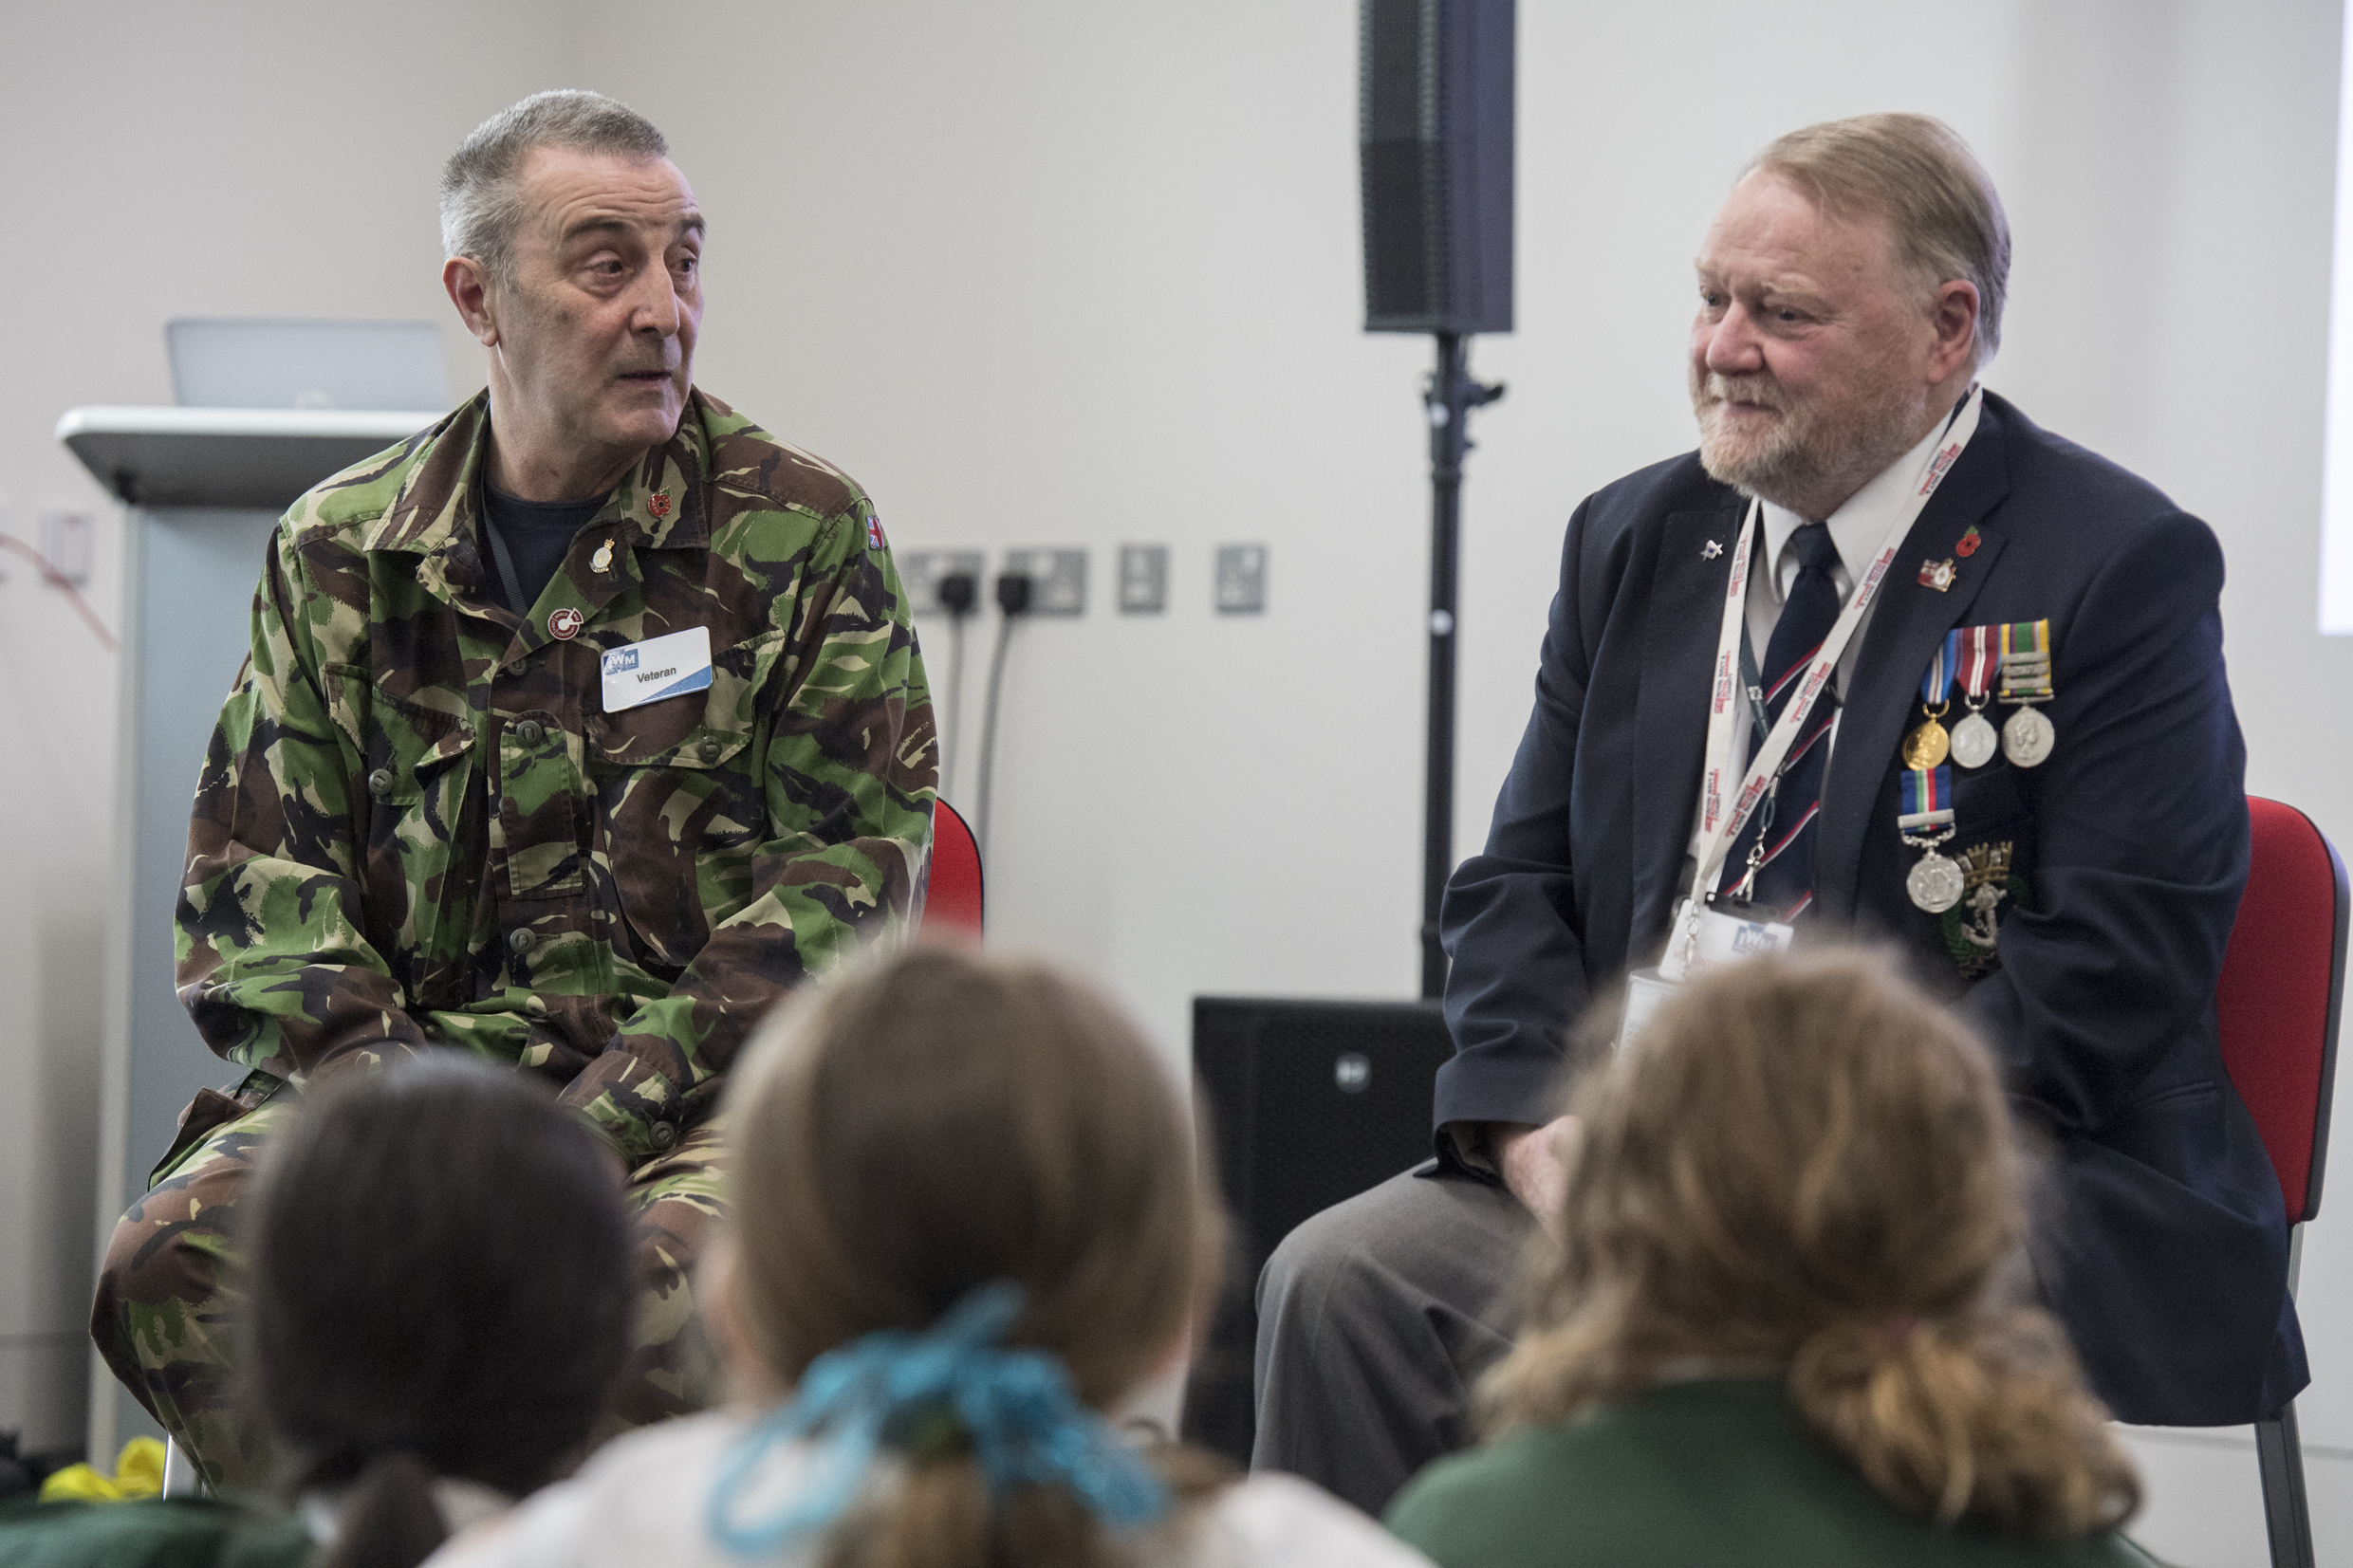 Meet a Veteran at IWM